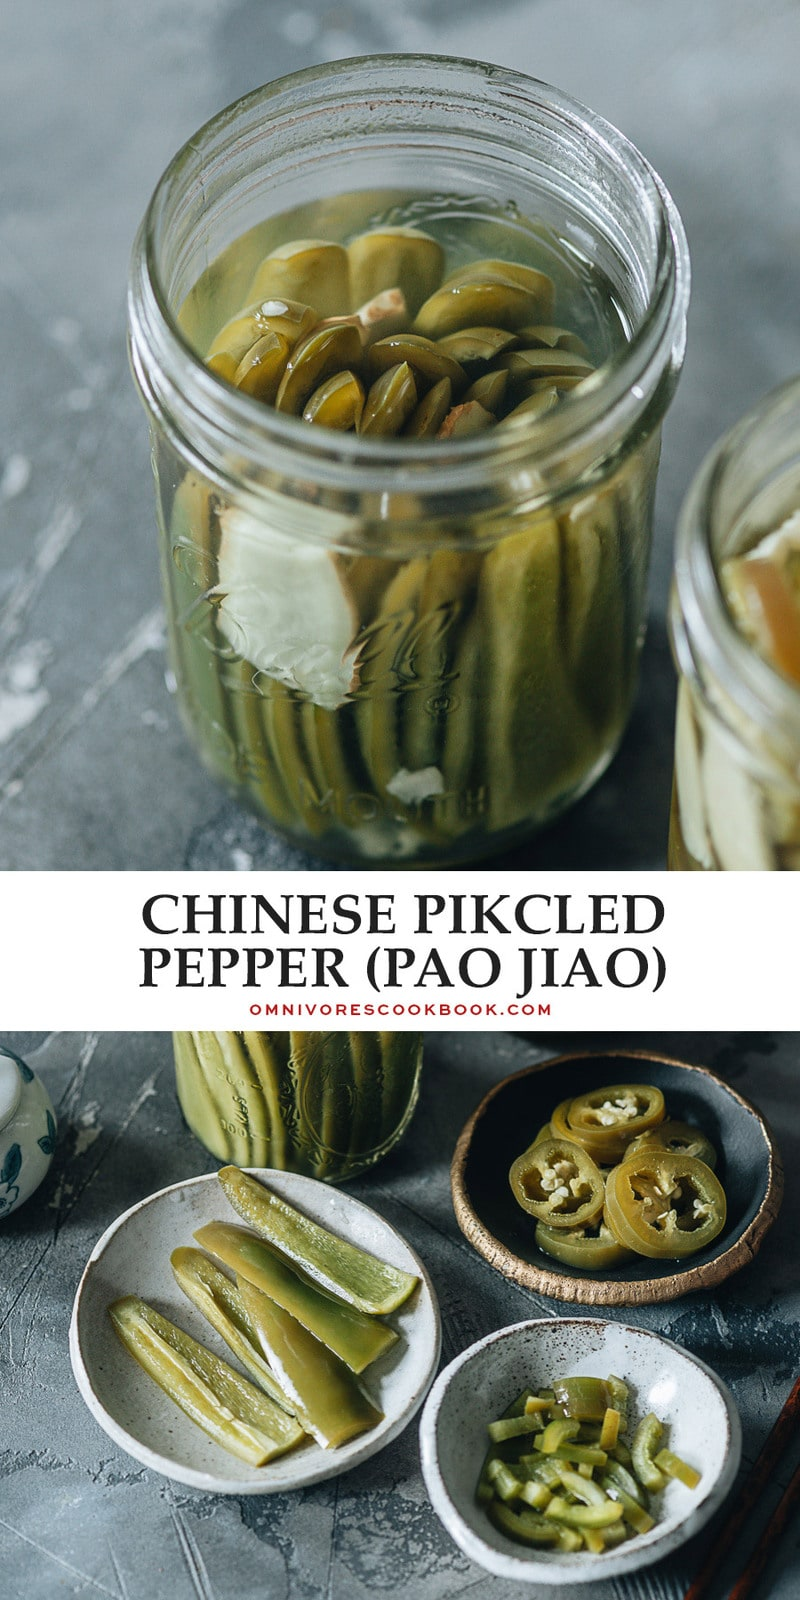 This quick and easy version of Chinese pickled peppers, also known as pao jiao, gives you a mildly salty and sour flavor to top off your favorite recipes. {Vegan, Gluten-Free adaptable}